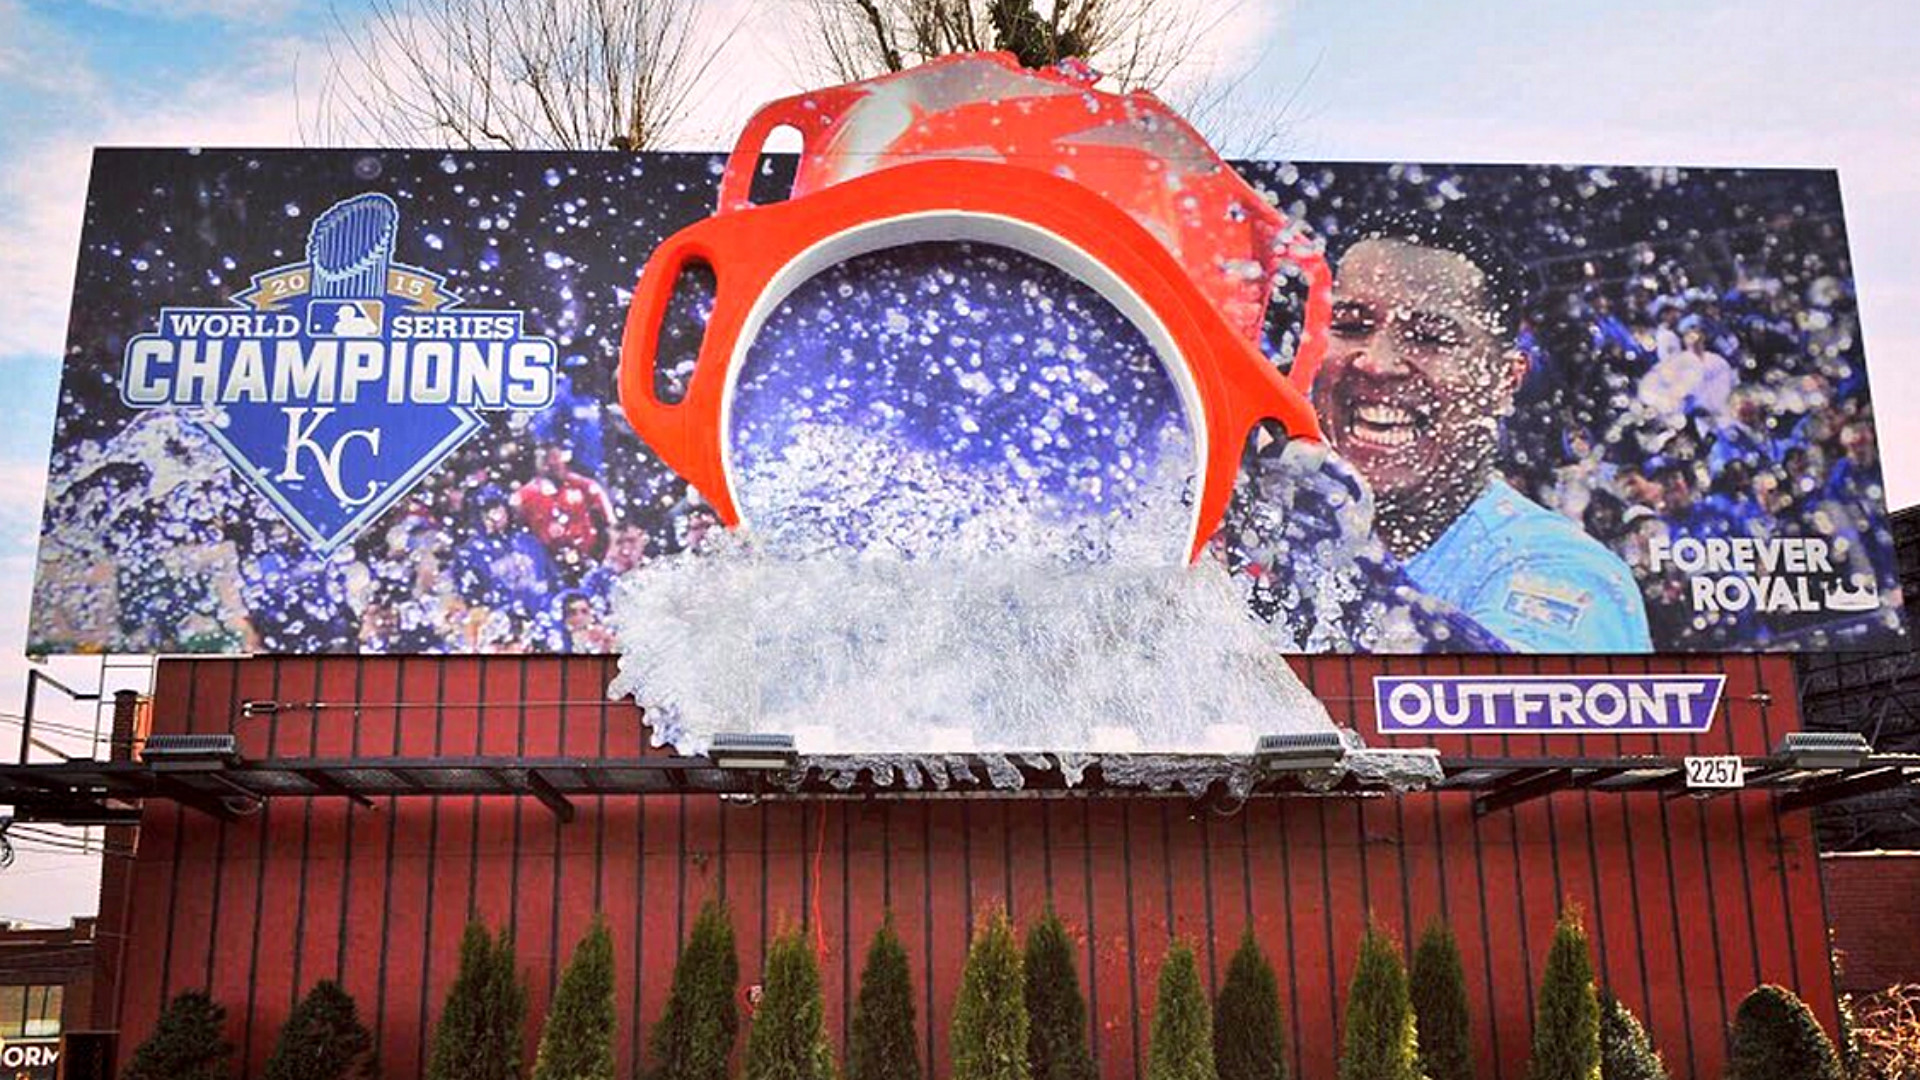 1920x1080 Salvador Perez gives fans a Gatorade shower in epic 3-D Royals billboard |  MLB | Sporting News